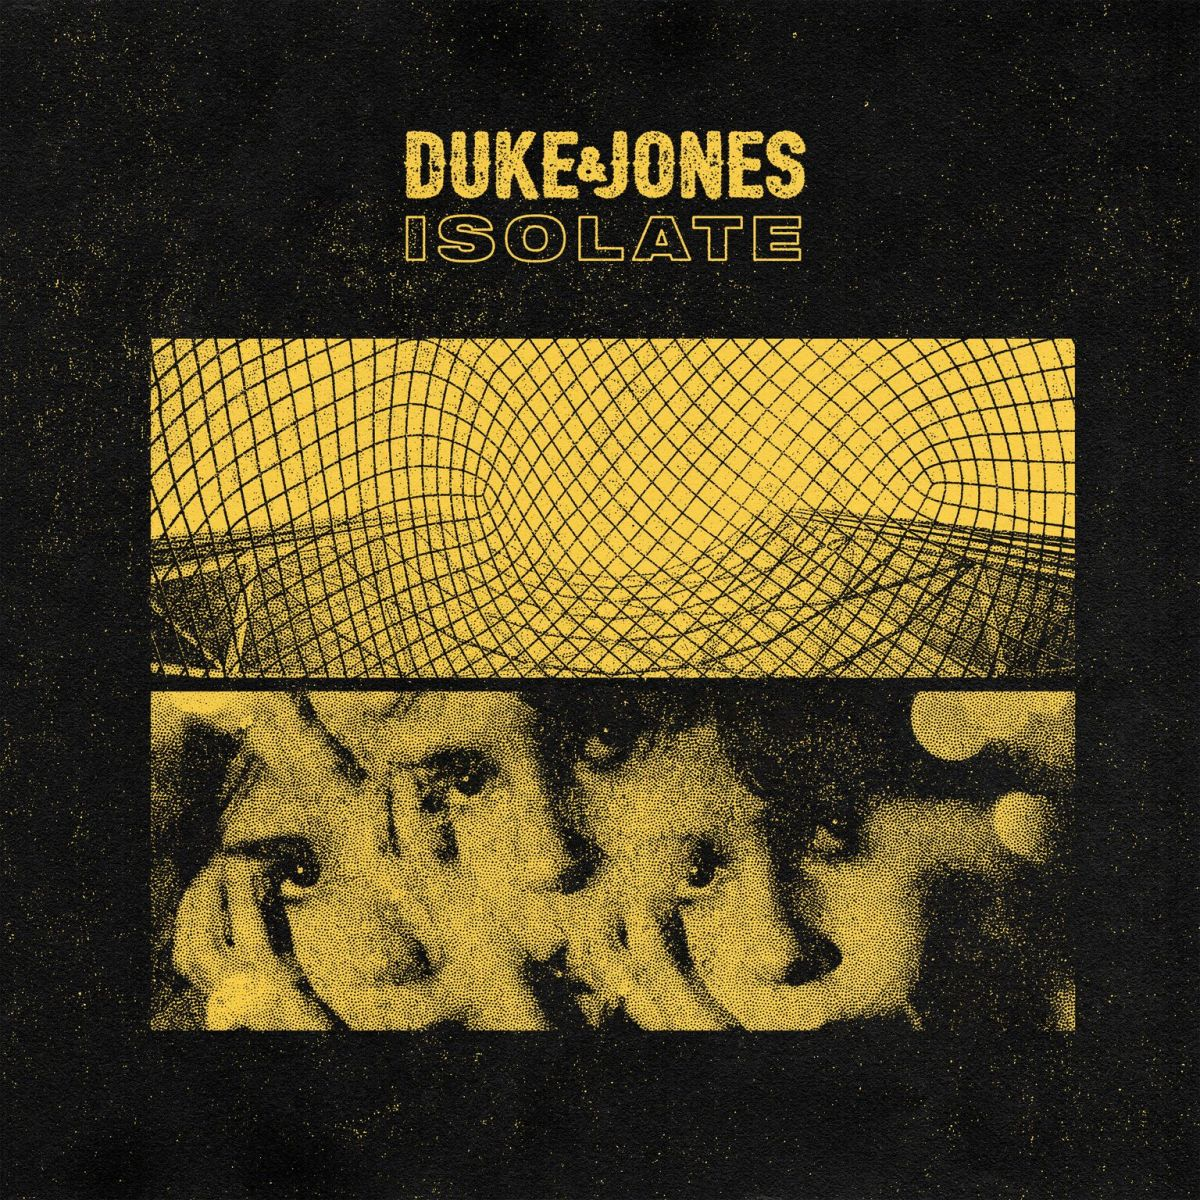 Duke & Jones Isolate